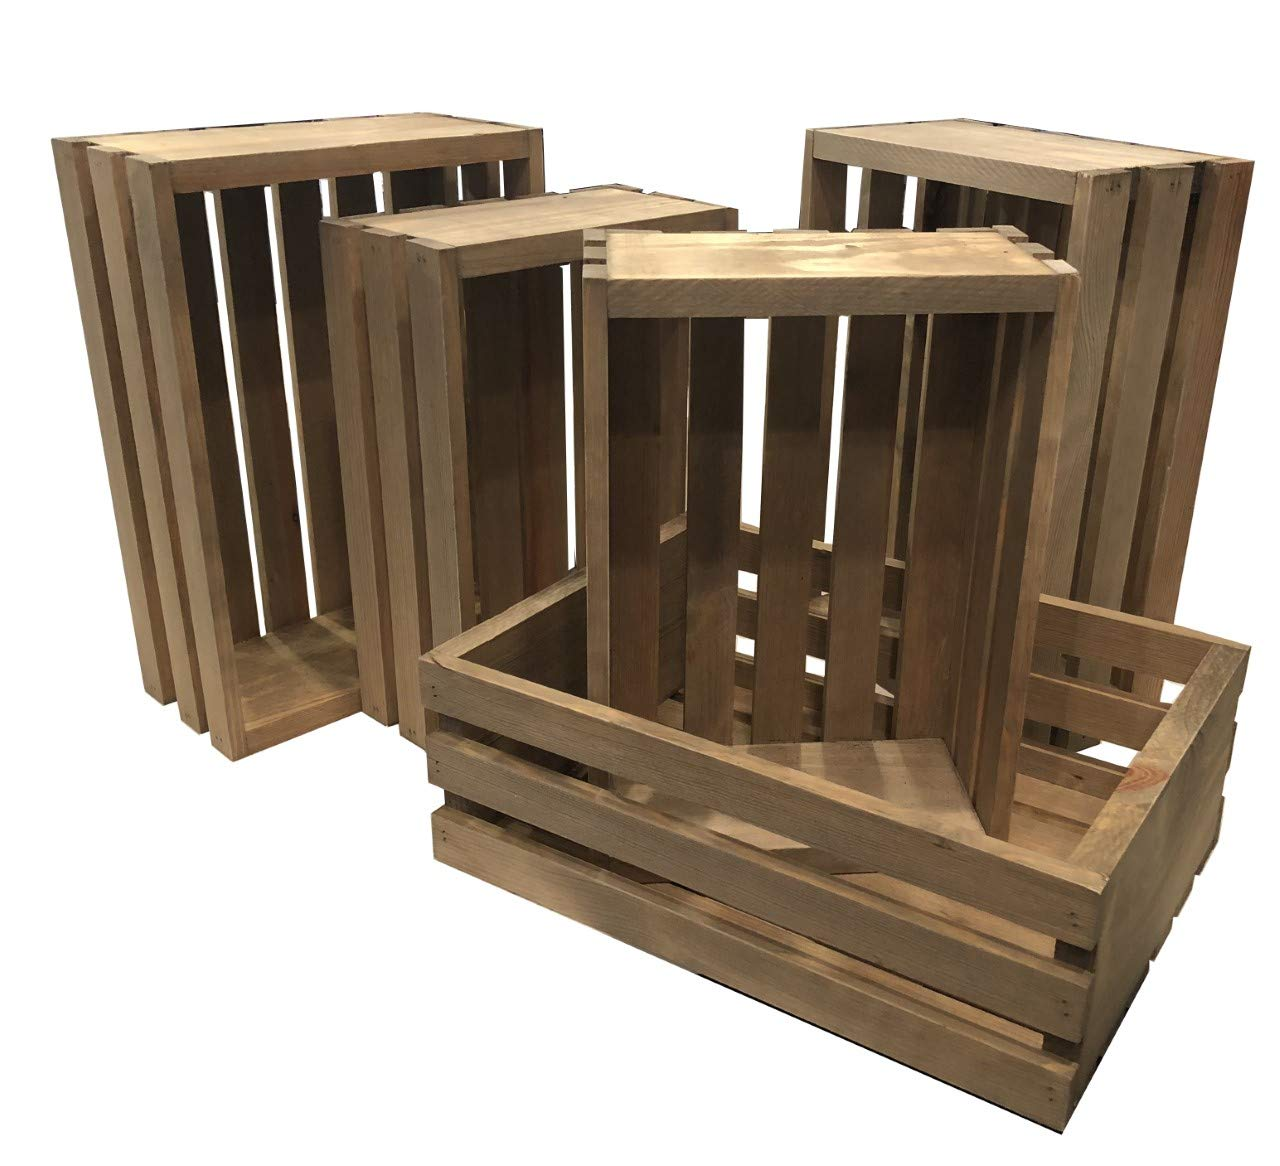 Rustic Nesting Wood Crates Set Of 5 Made In The Usa